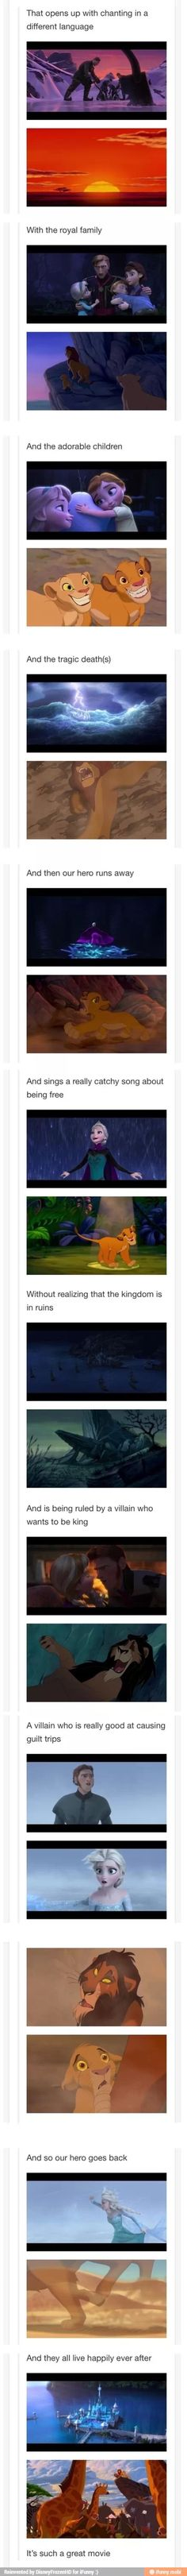 "Disney often advertised Frozen as the ""greatest animated film since The Lion King."" That makes a whole ton of sense if it IS The Lion King. Disney Facts, Disney Memes, Disney Quotes, Disney Love, Disney Magic, Funny Disney, Disney Stuff, Kiara Lion King, The Lion King"